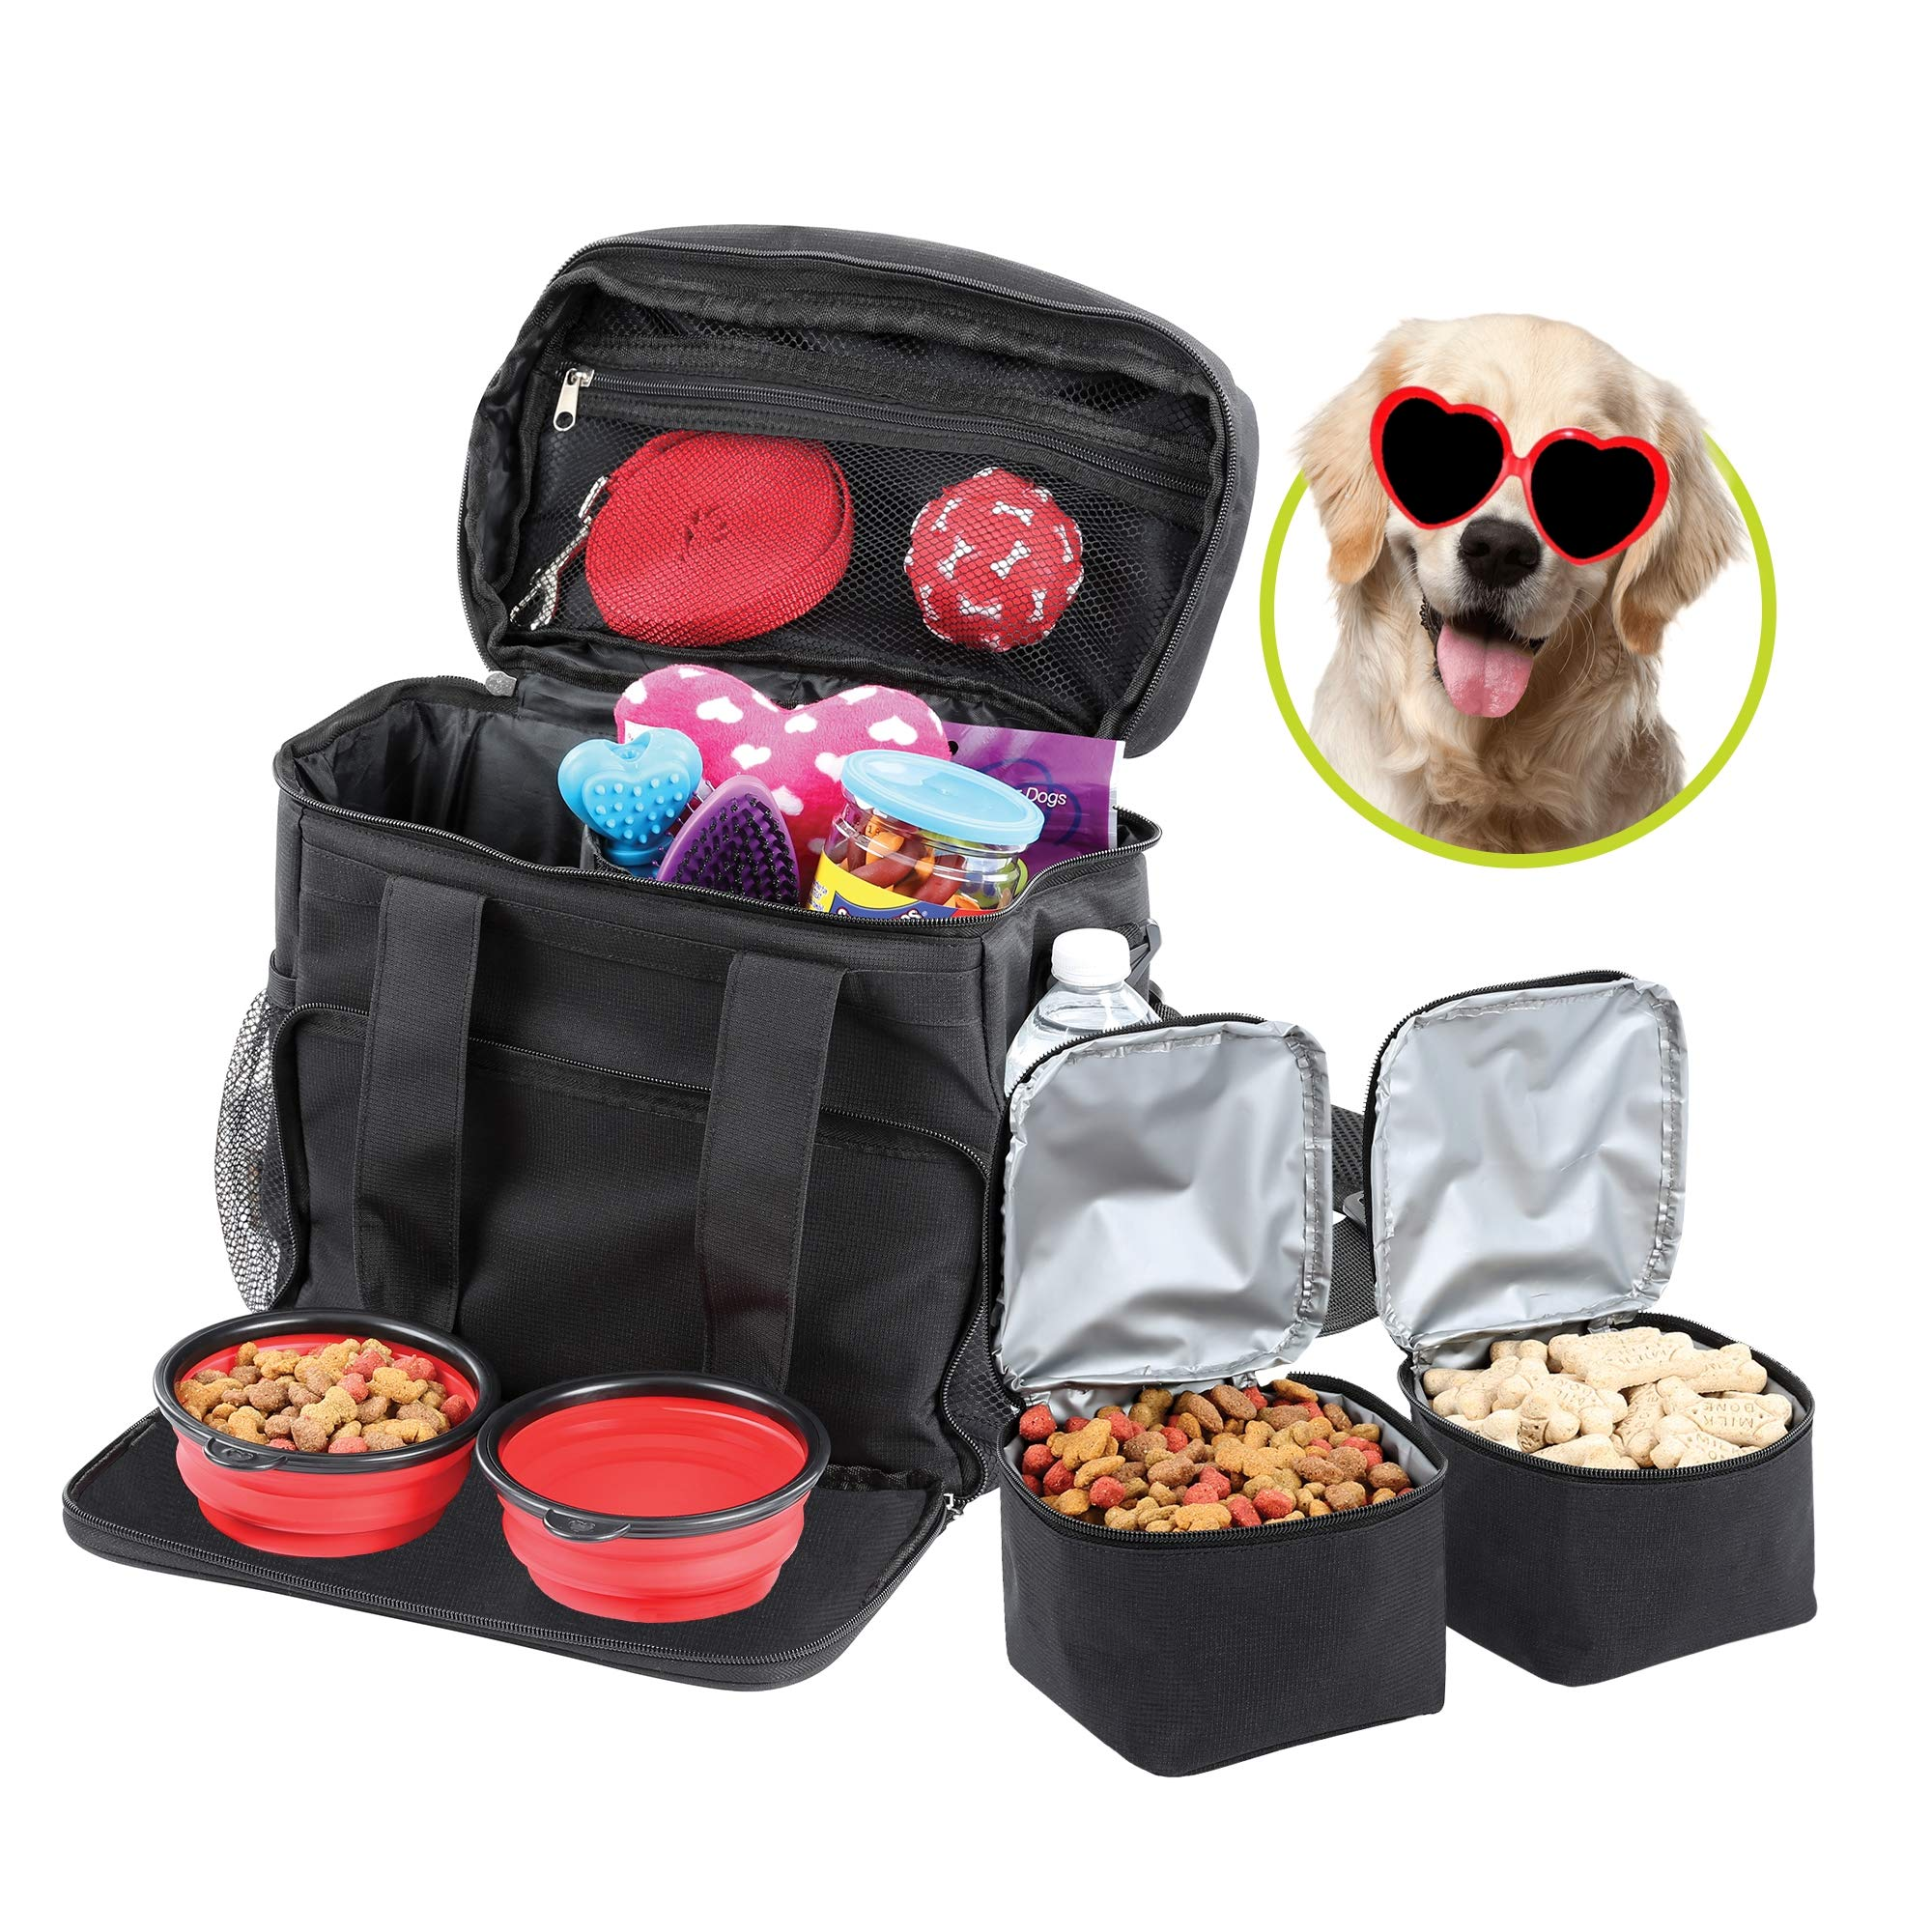 Bundaloo Dog Travel Bag Accessories Supplies Organizer 5-Piece Set with Shoulder Strap | 2 Lined Pet Food Containers, 2 Collapsible Feeding Bowls. Everyday Dogs Essentials by Bundaloo